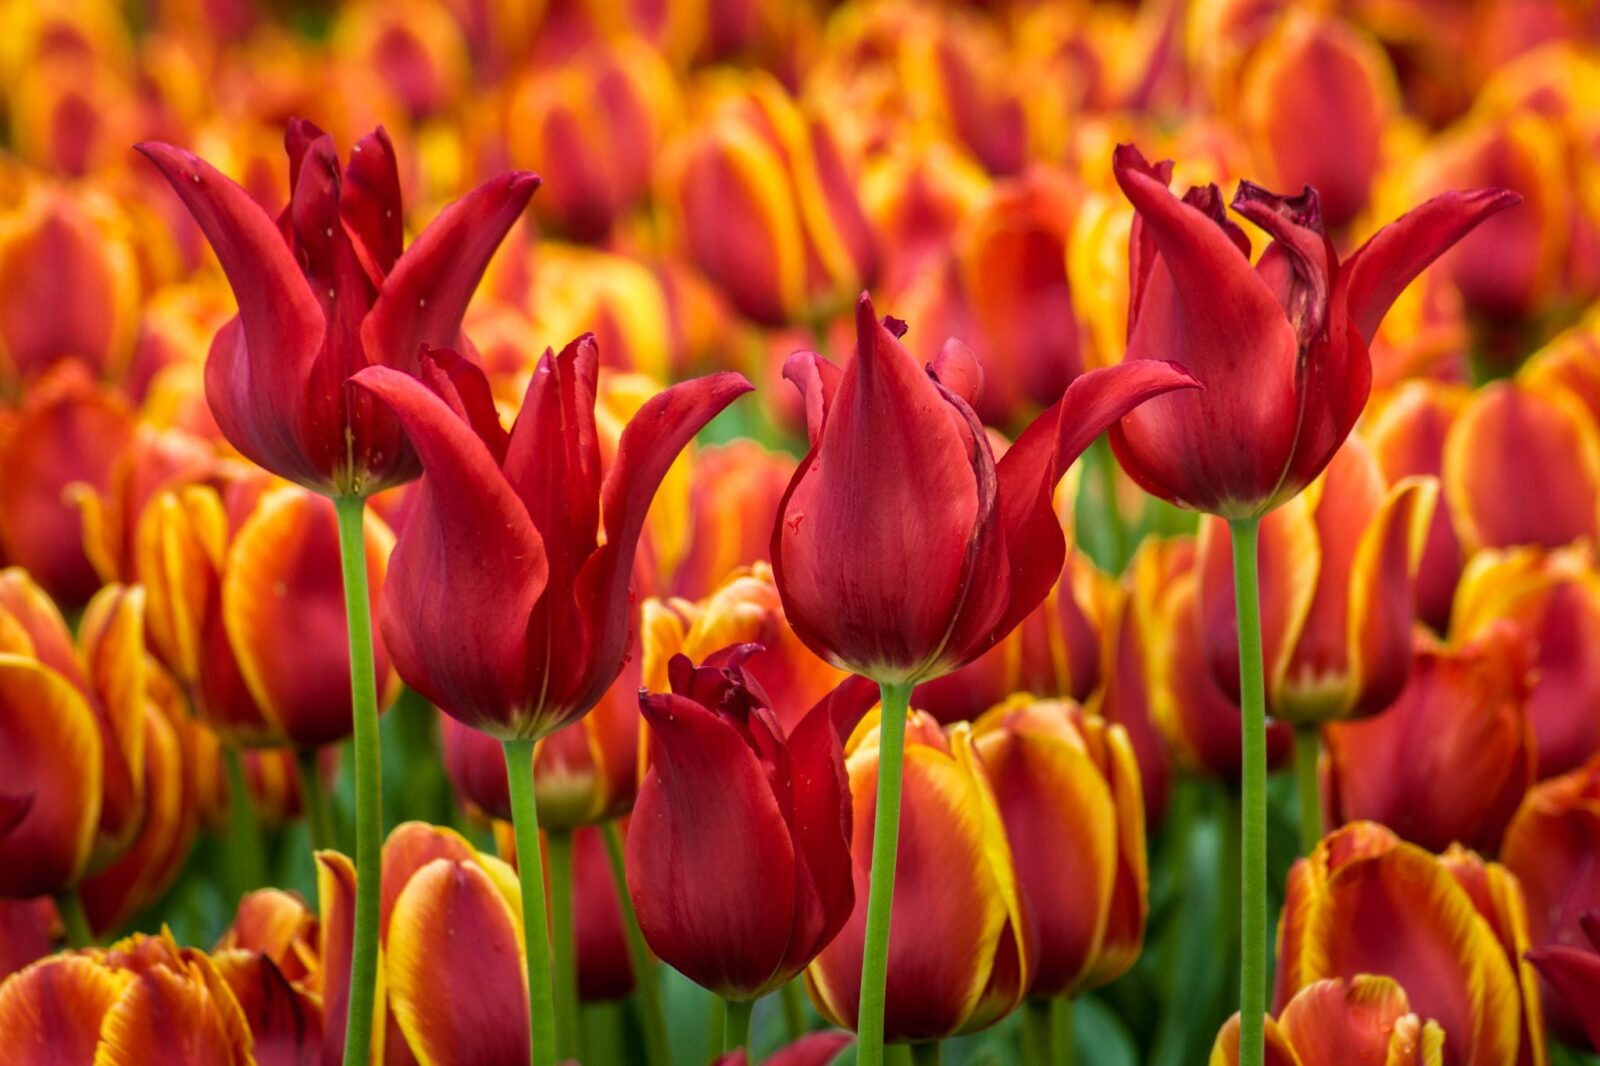 cool Tulips wallpaper download